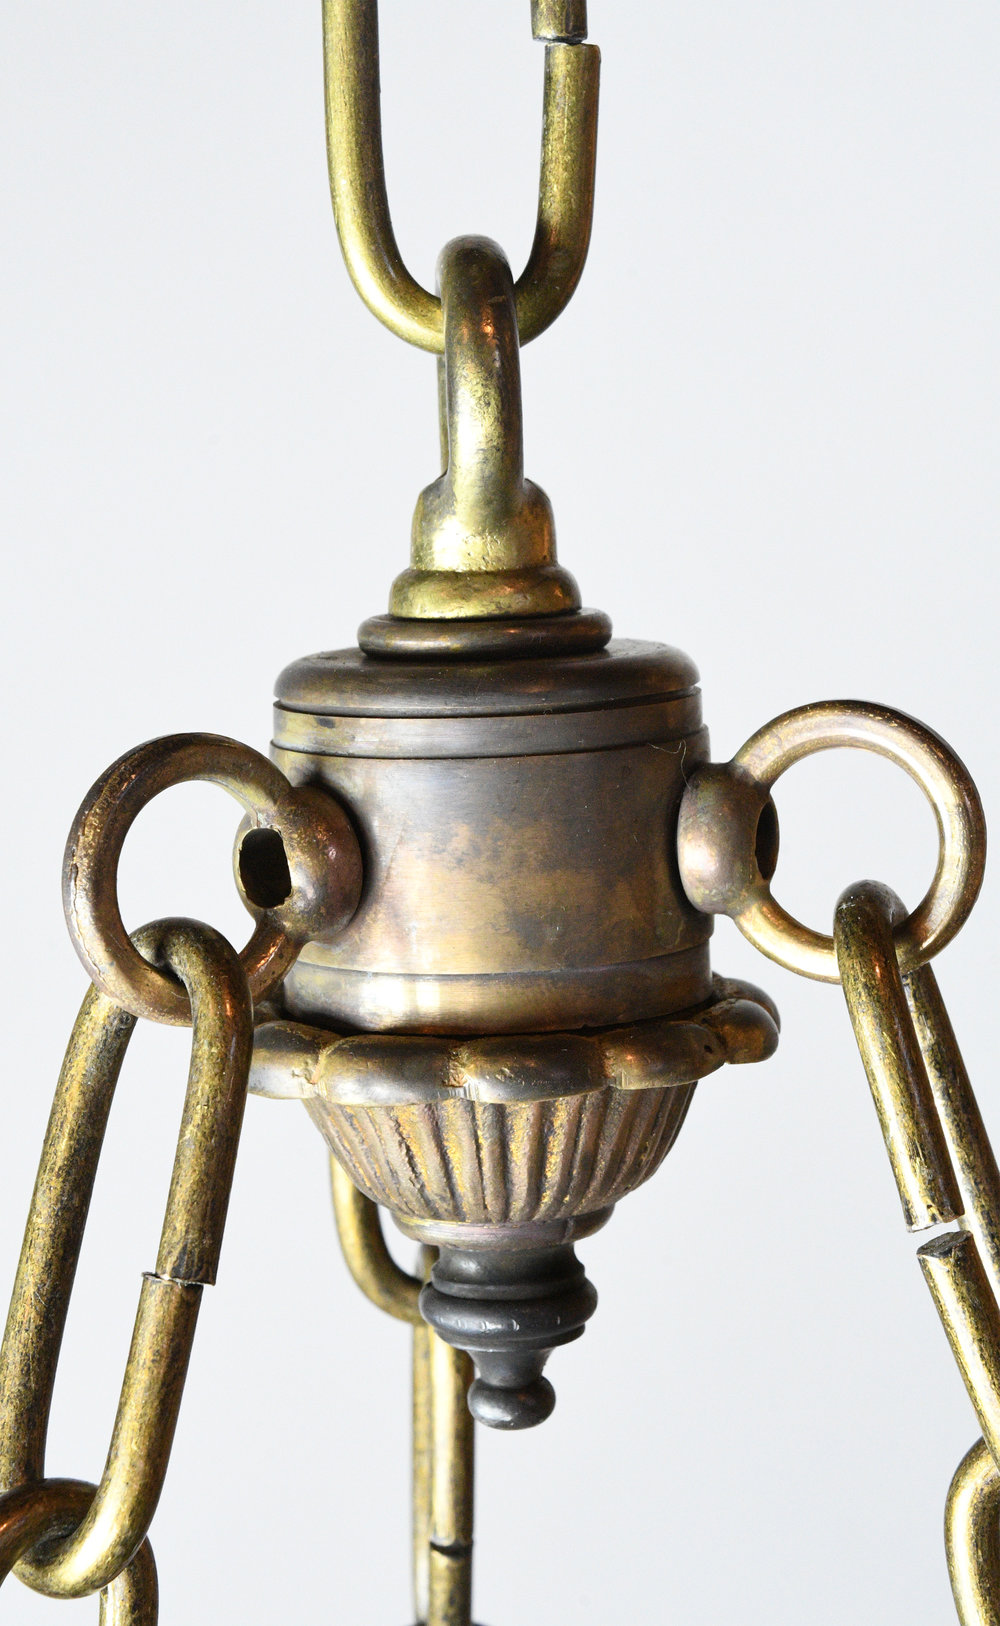 47529-6-candle-tudor-brass-chand-with-bent-glass-detail-7.jpg